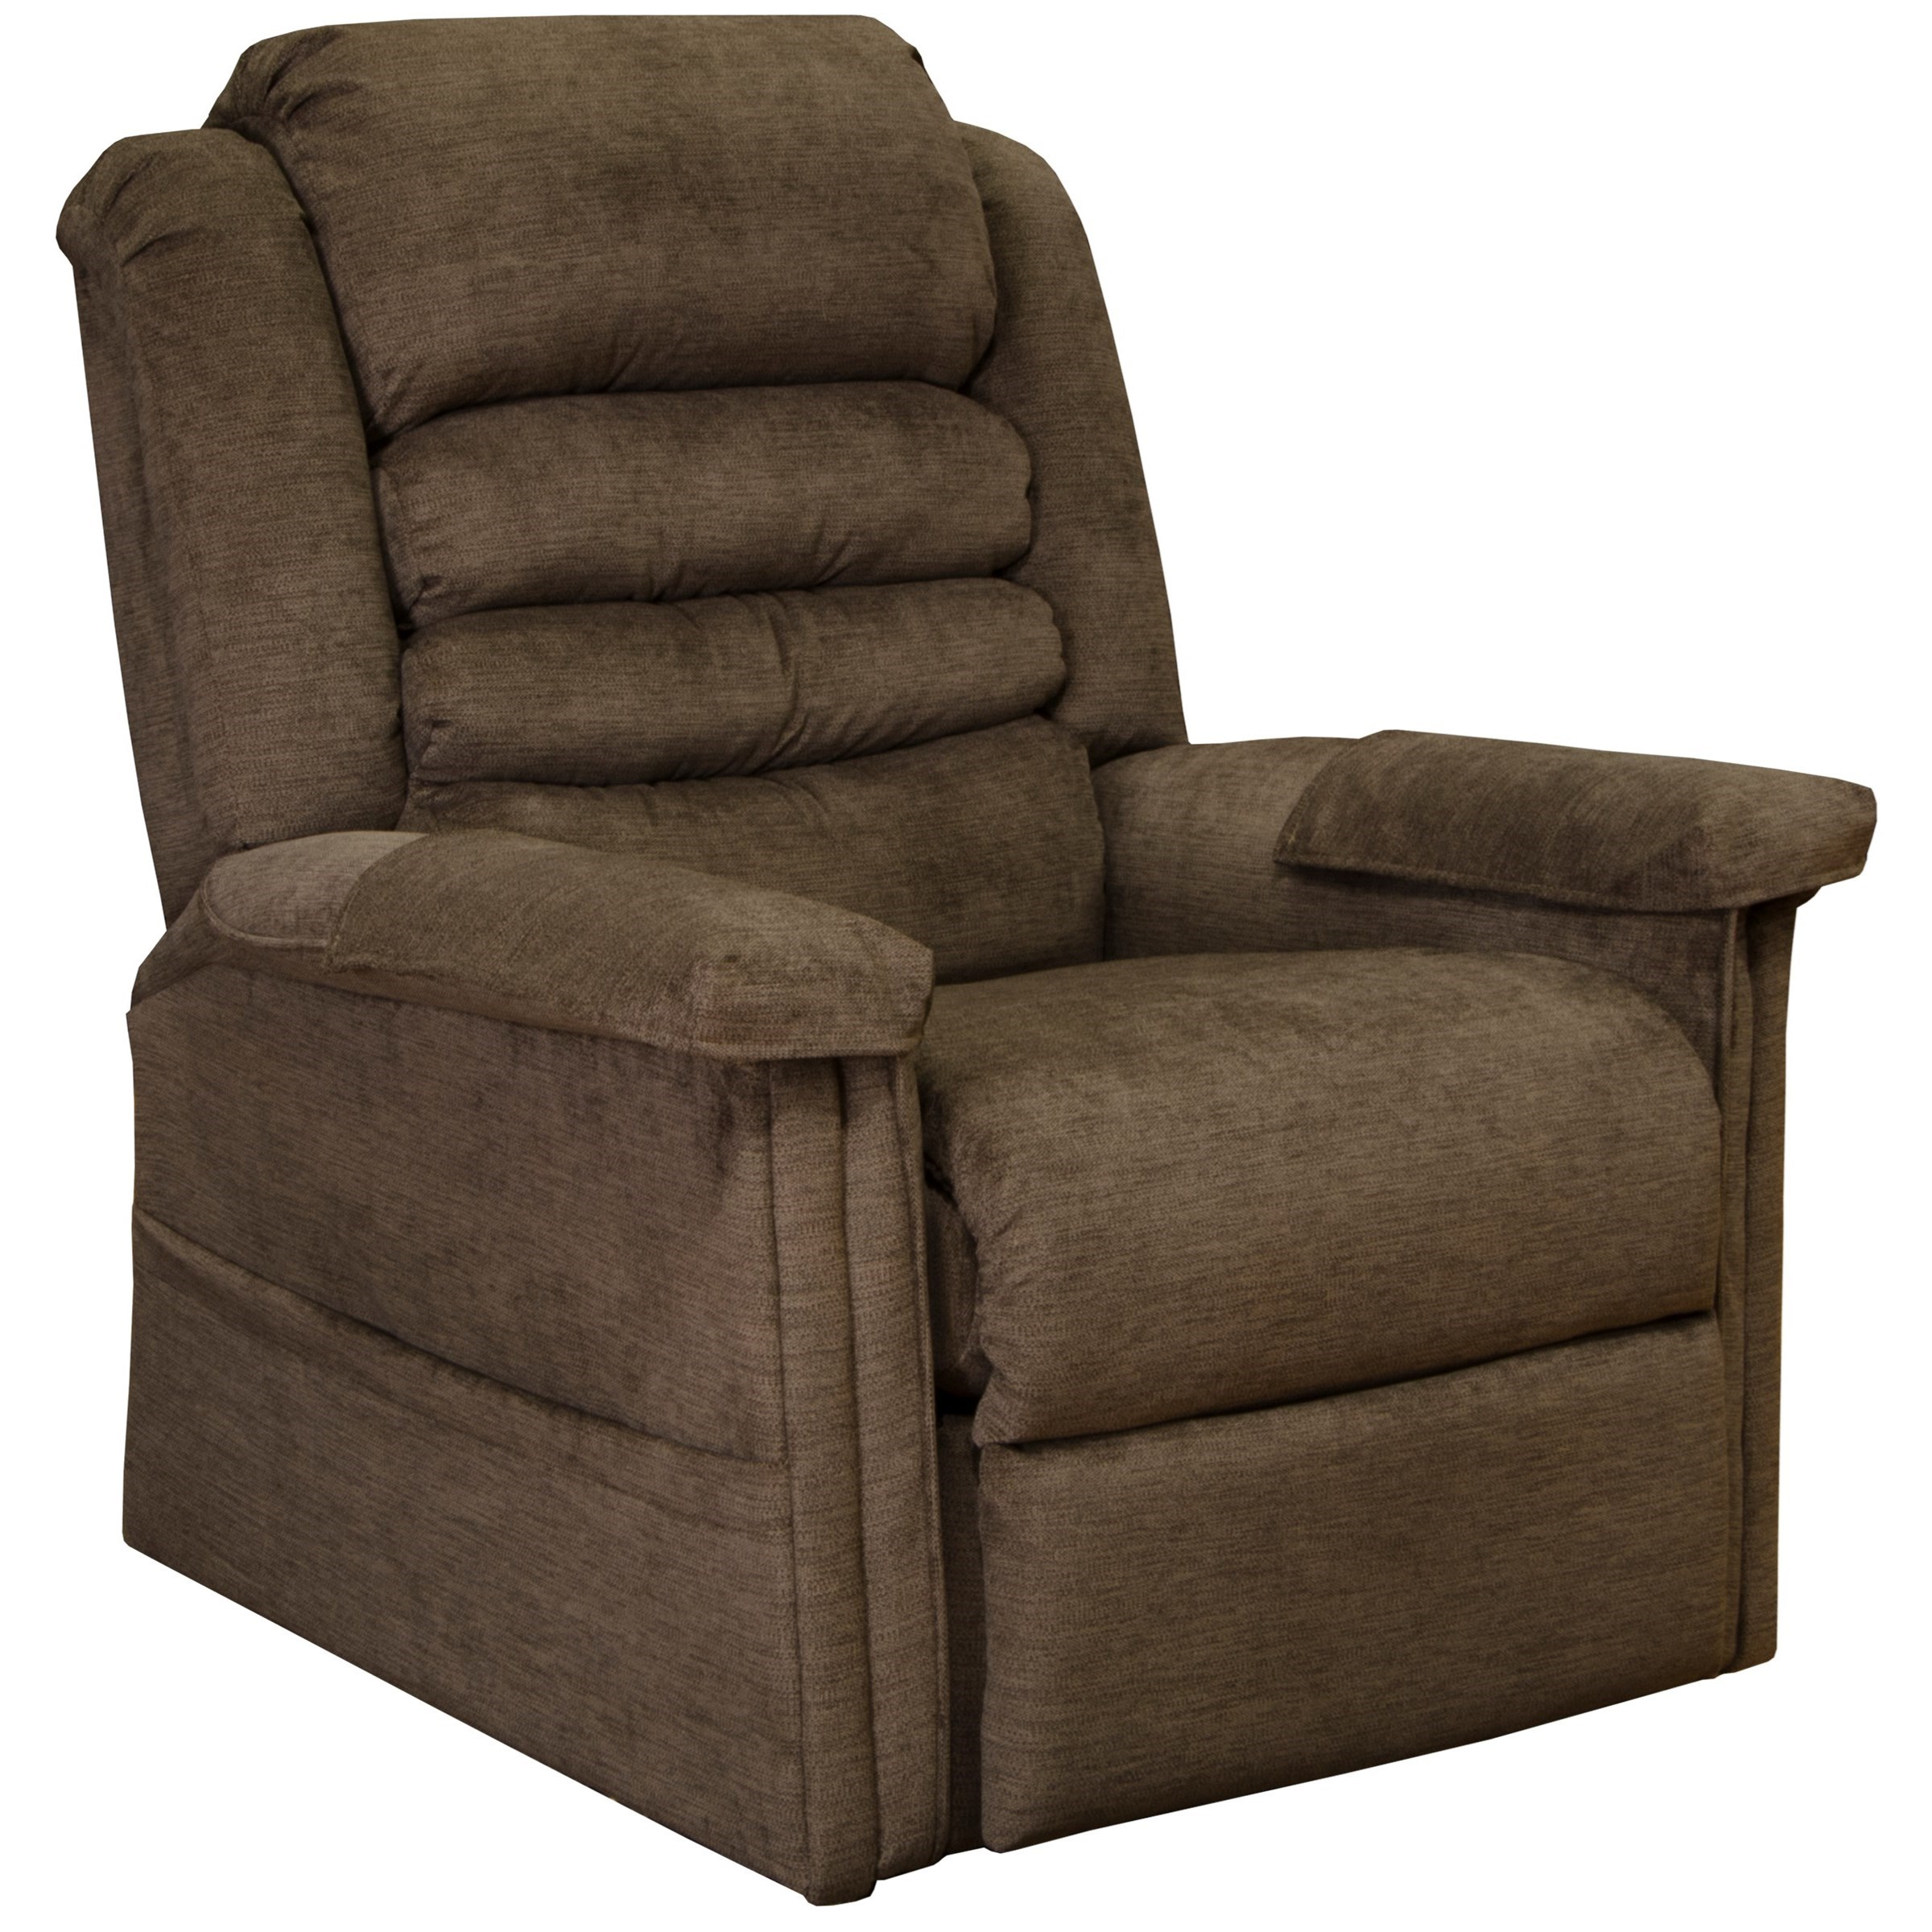 "Invincible 4832 ""Pow'r Lift"" Recliner by Catnapper at EFO Furniture Outlet"